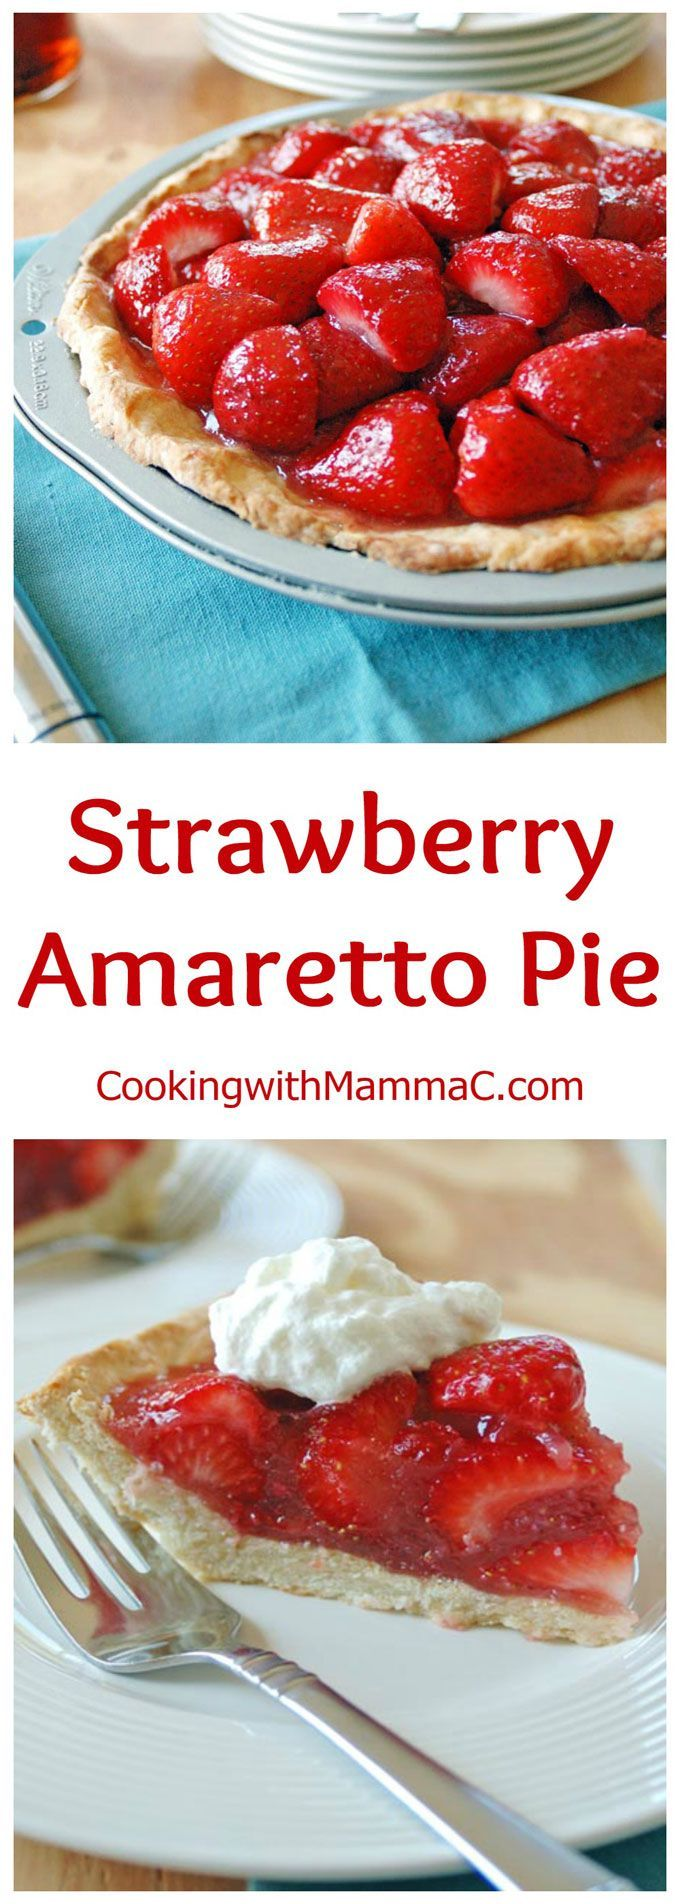 Strawberry Amaretto Pie has a no-roll amaretto crust, a strawberry ...